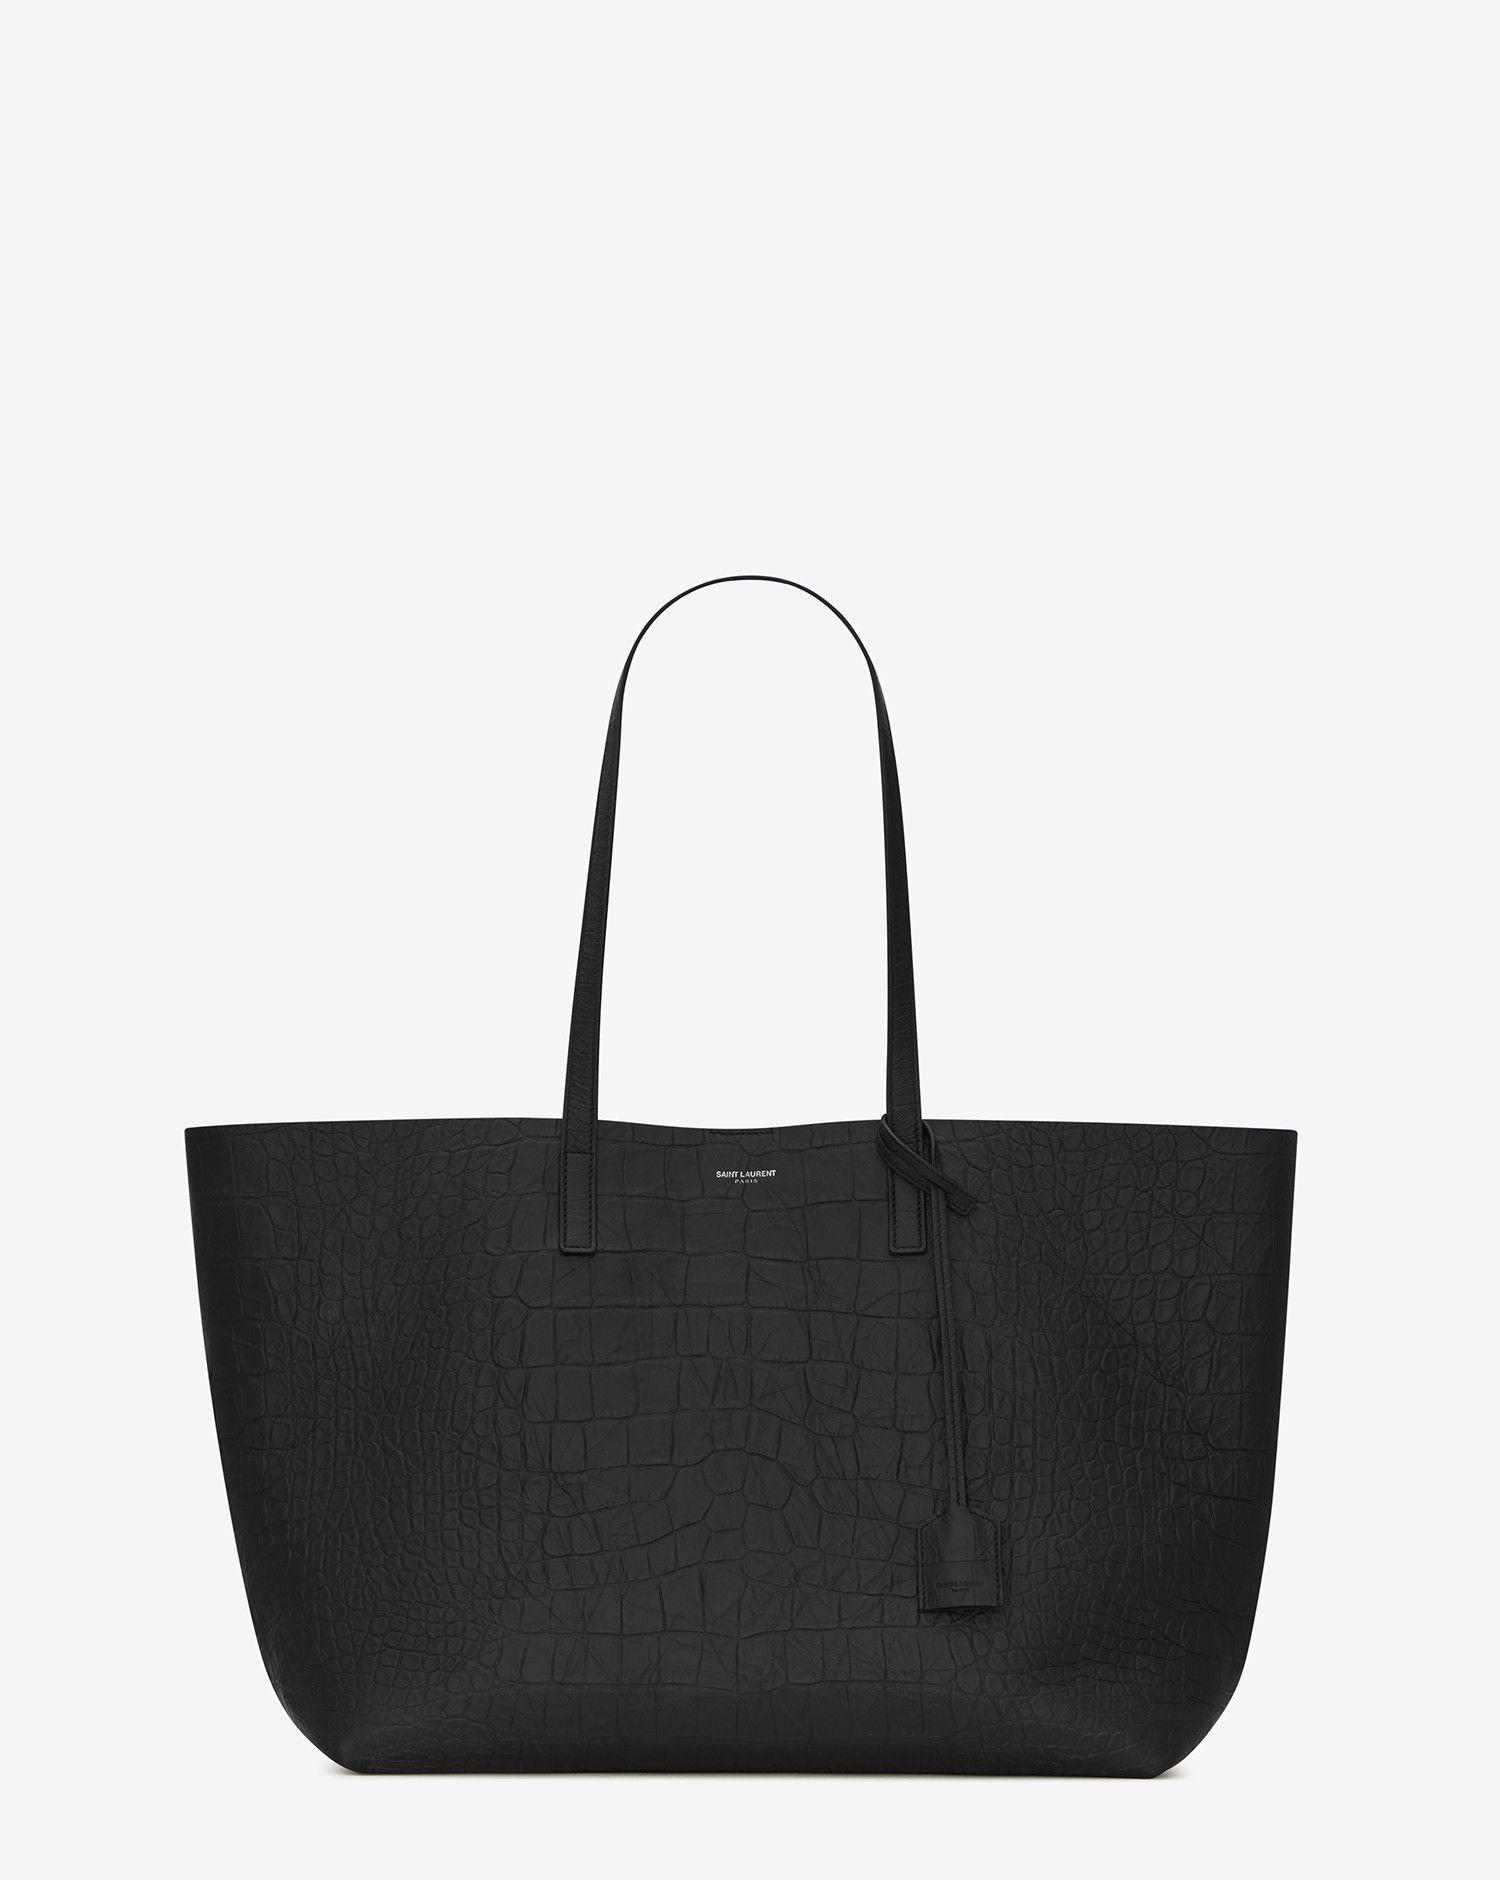 2d8e8ac758f shopping bag saint laurent E/W in embossed crocodile leather in 2019 ...